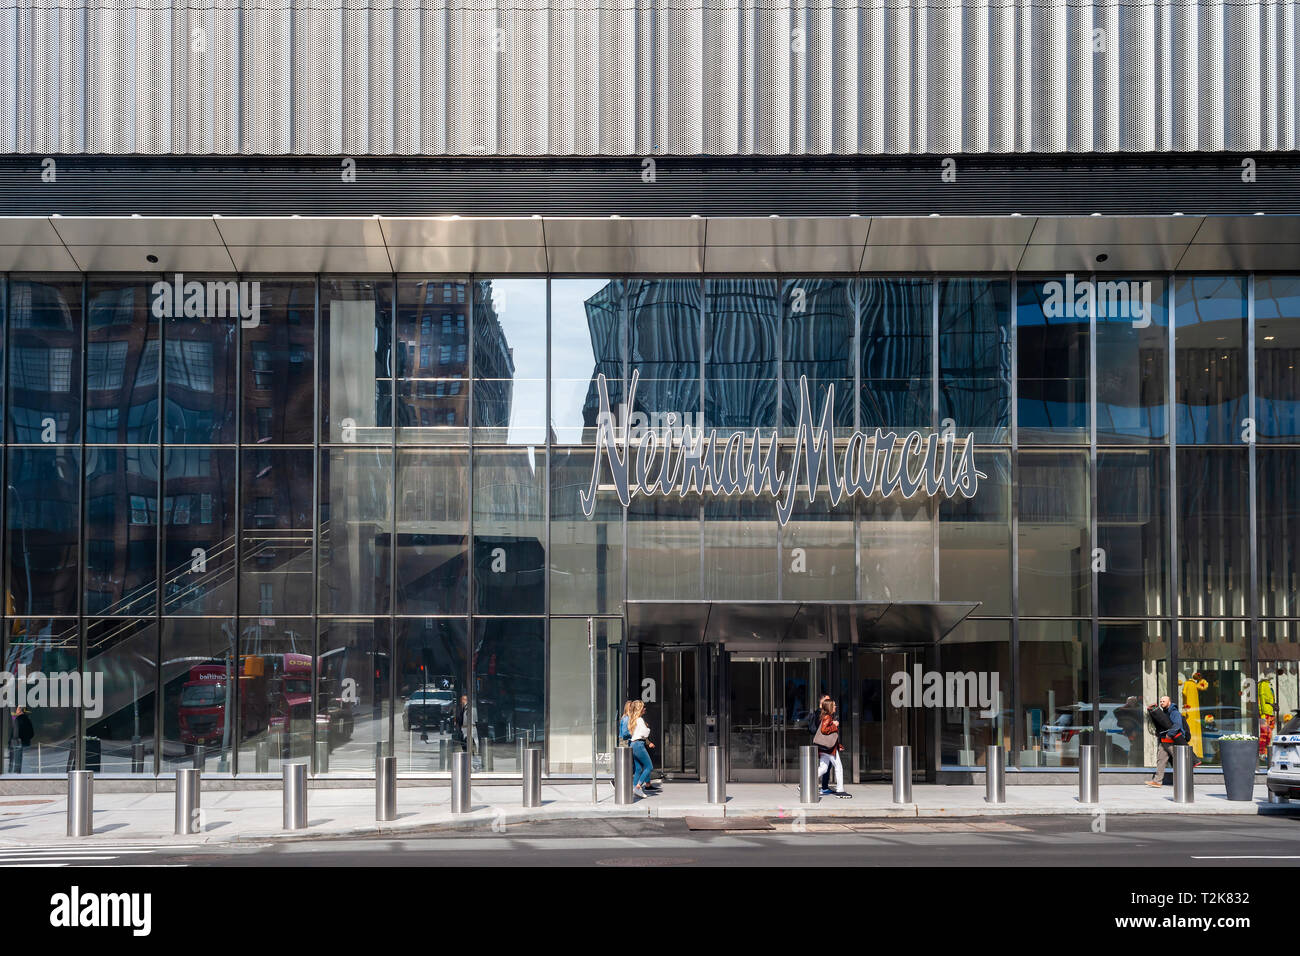 265e084d8 Entrance to the Hudson Yards mall on the West Side of Manhattan on  Saturday